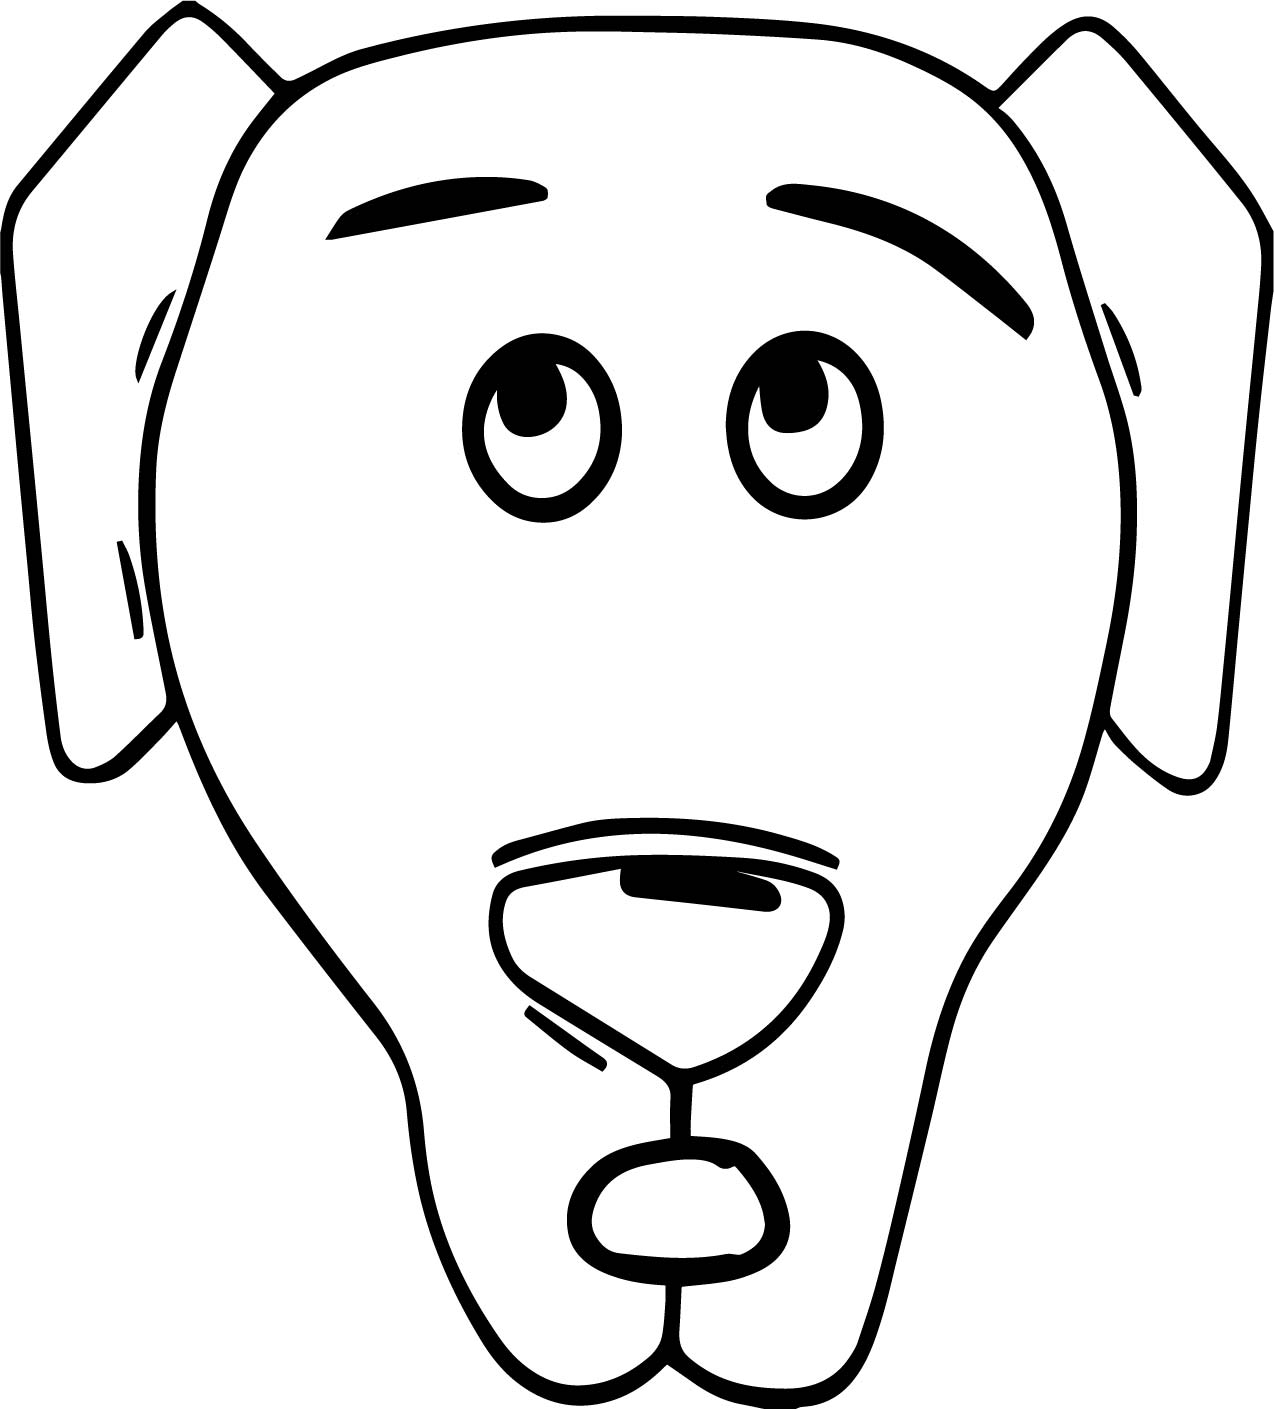 dog face coloring pages a dog face coloring page wecoloringpagecom dog pages face coloring